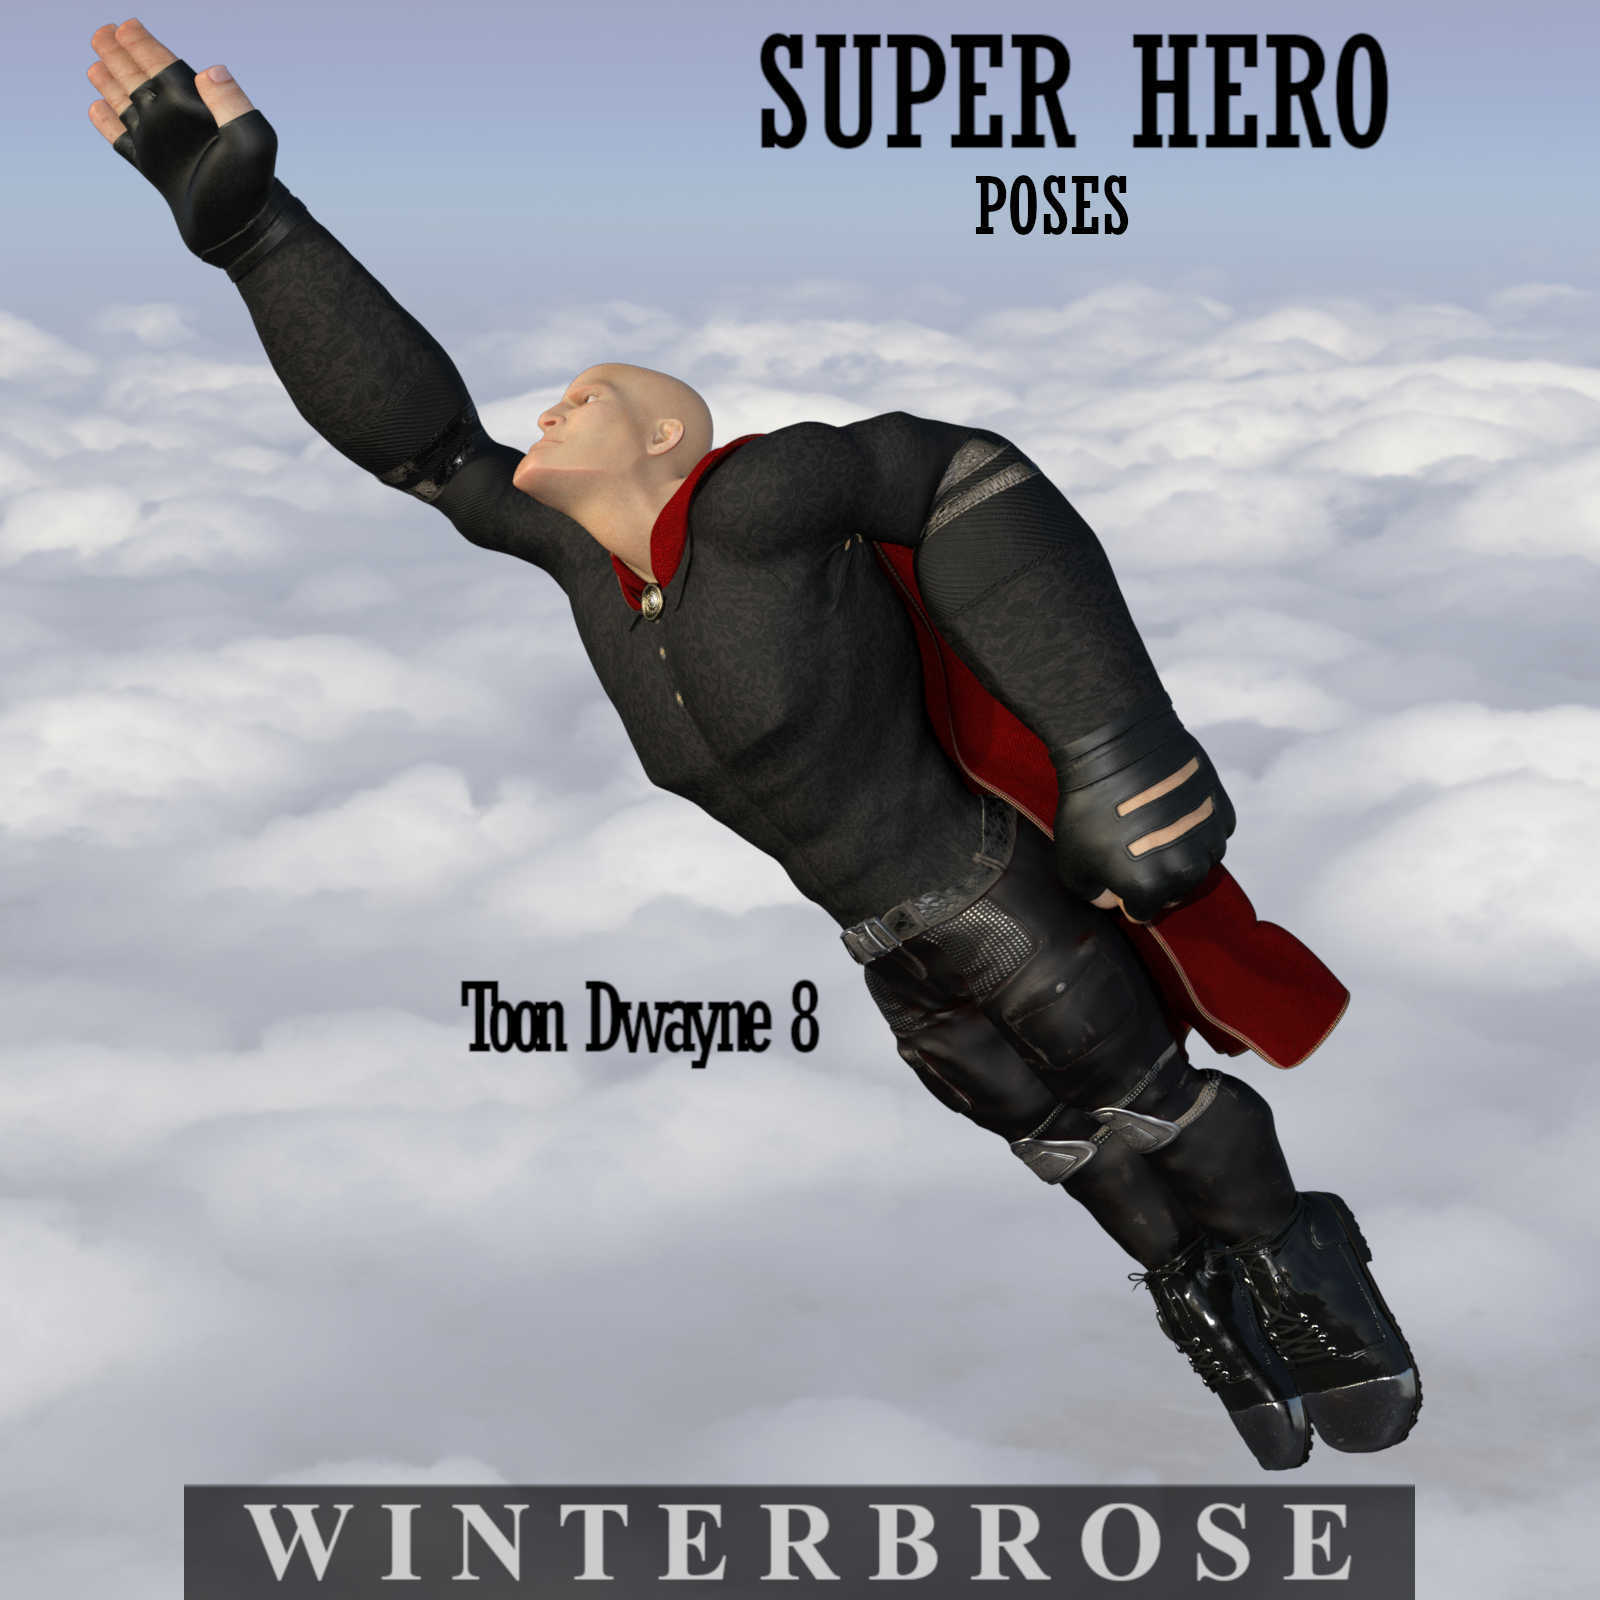 SUPER HERO Poses for Toon Dwayne 8